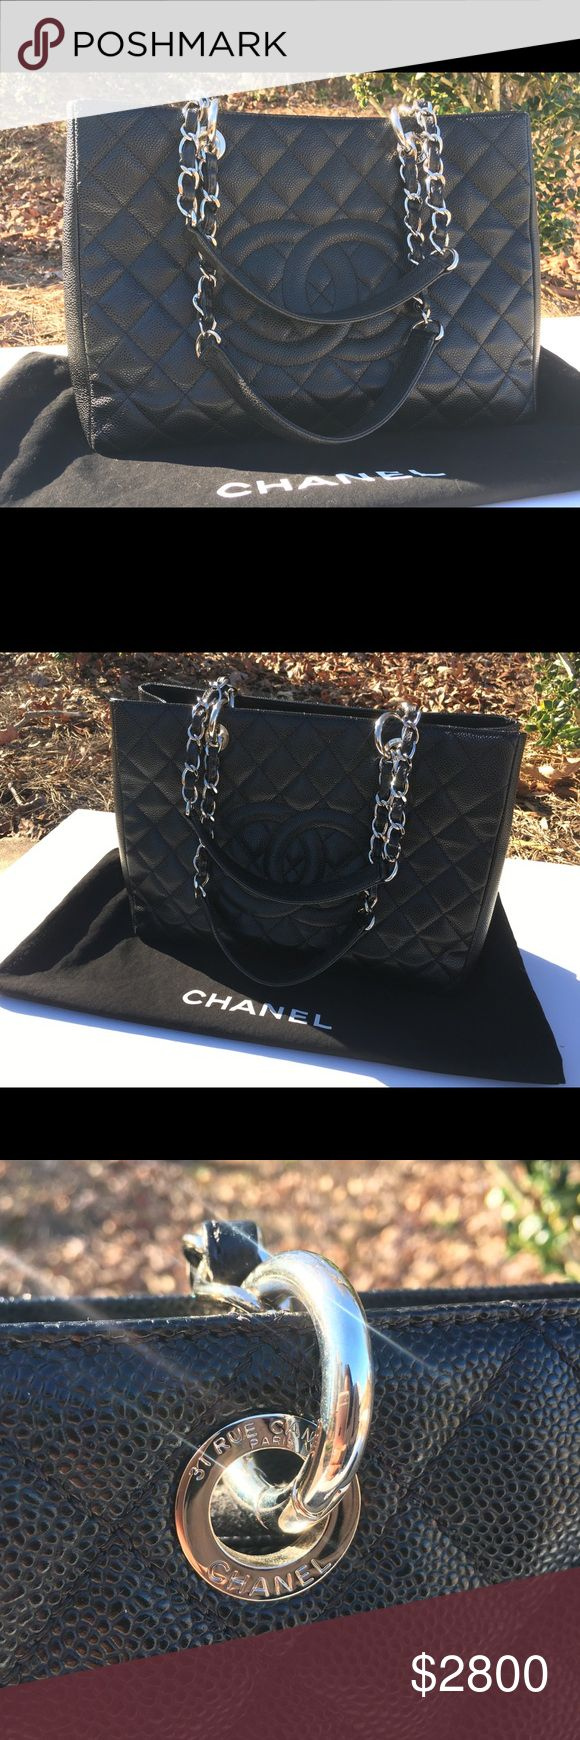 Chanel Shopper 100% Authentic. Purchased online from Bergdorf Goodman. No box. Card, dustbag, copy of receipt included. Carried only a few times. Excellent condition! CHANEL Bags Totes